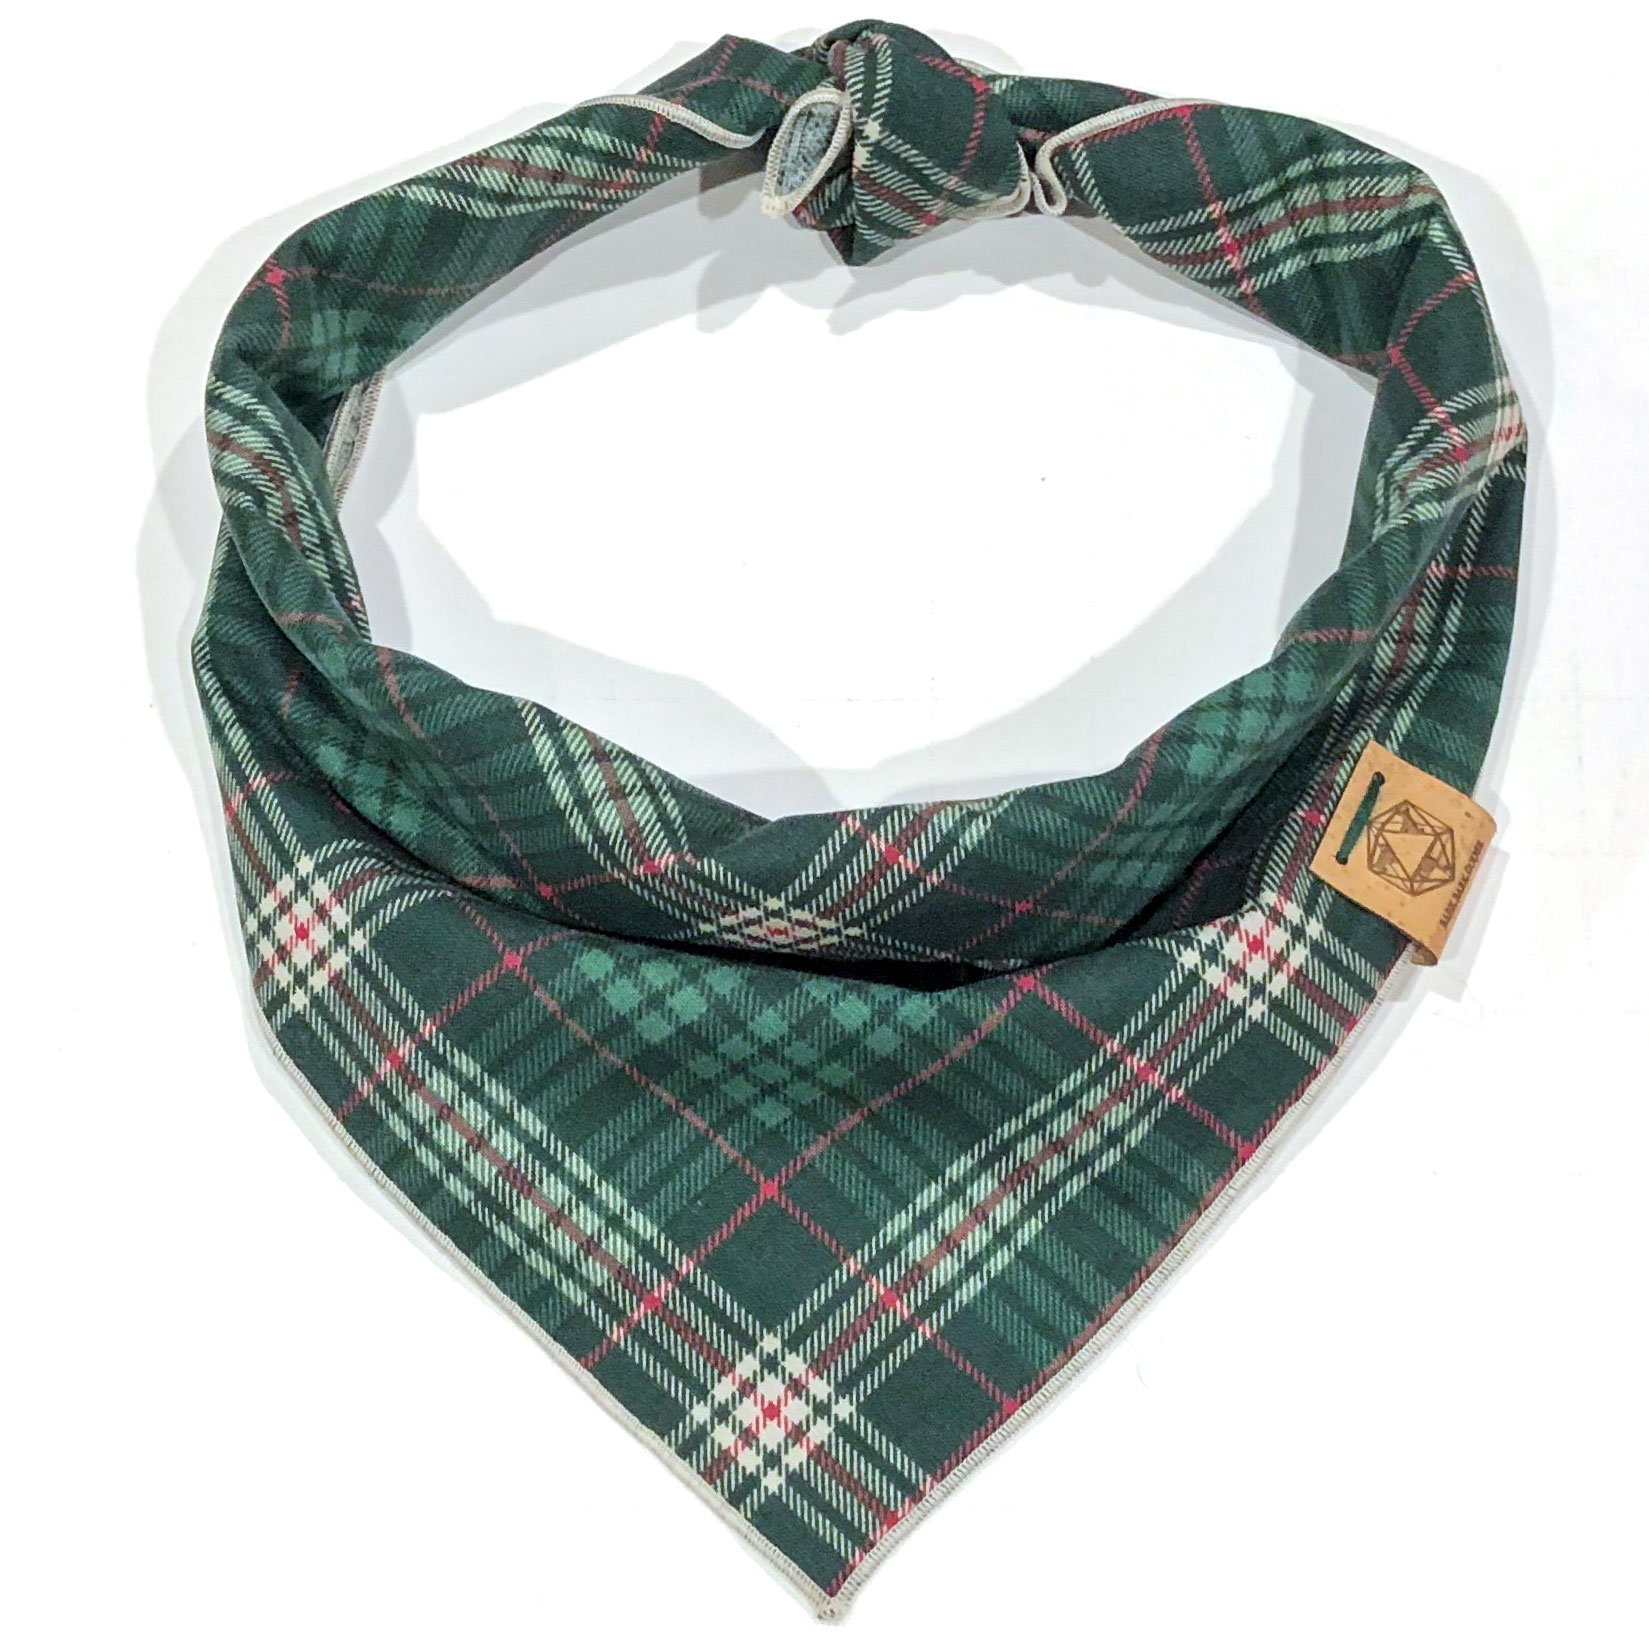 green-plaid-dog-bandana-for-christmas.jpg